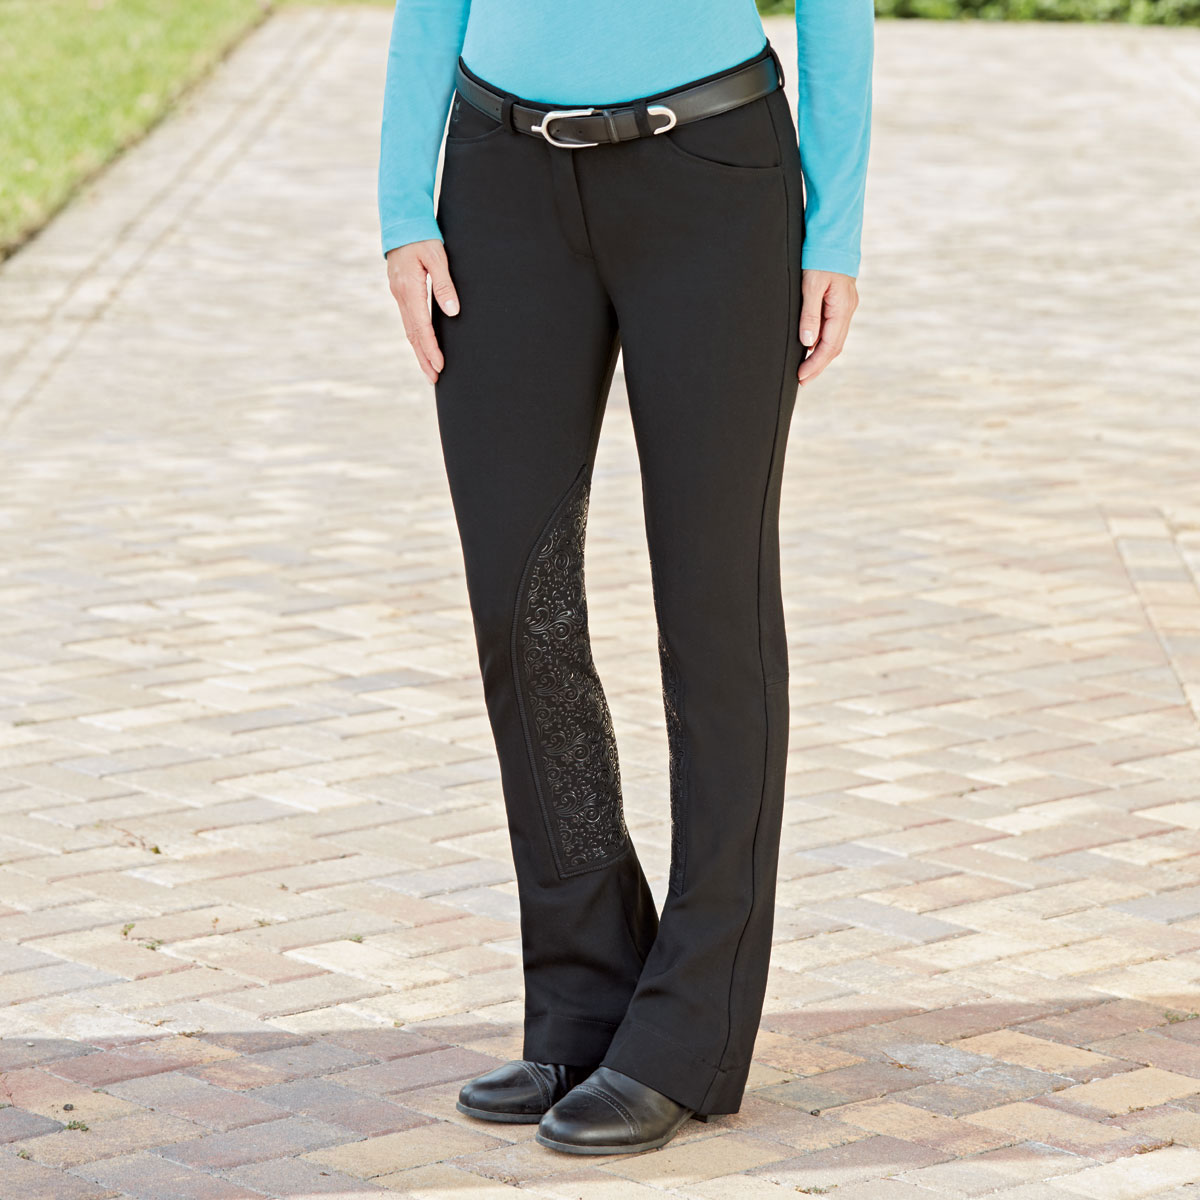 a51f6d80e05 Piper Knit Breeches by SmartPak - Mid Rise Boot Cut Knee Patch